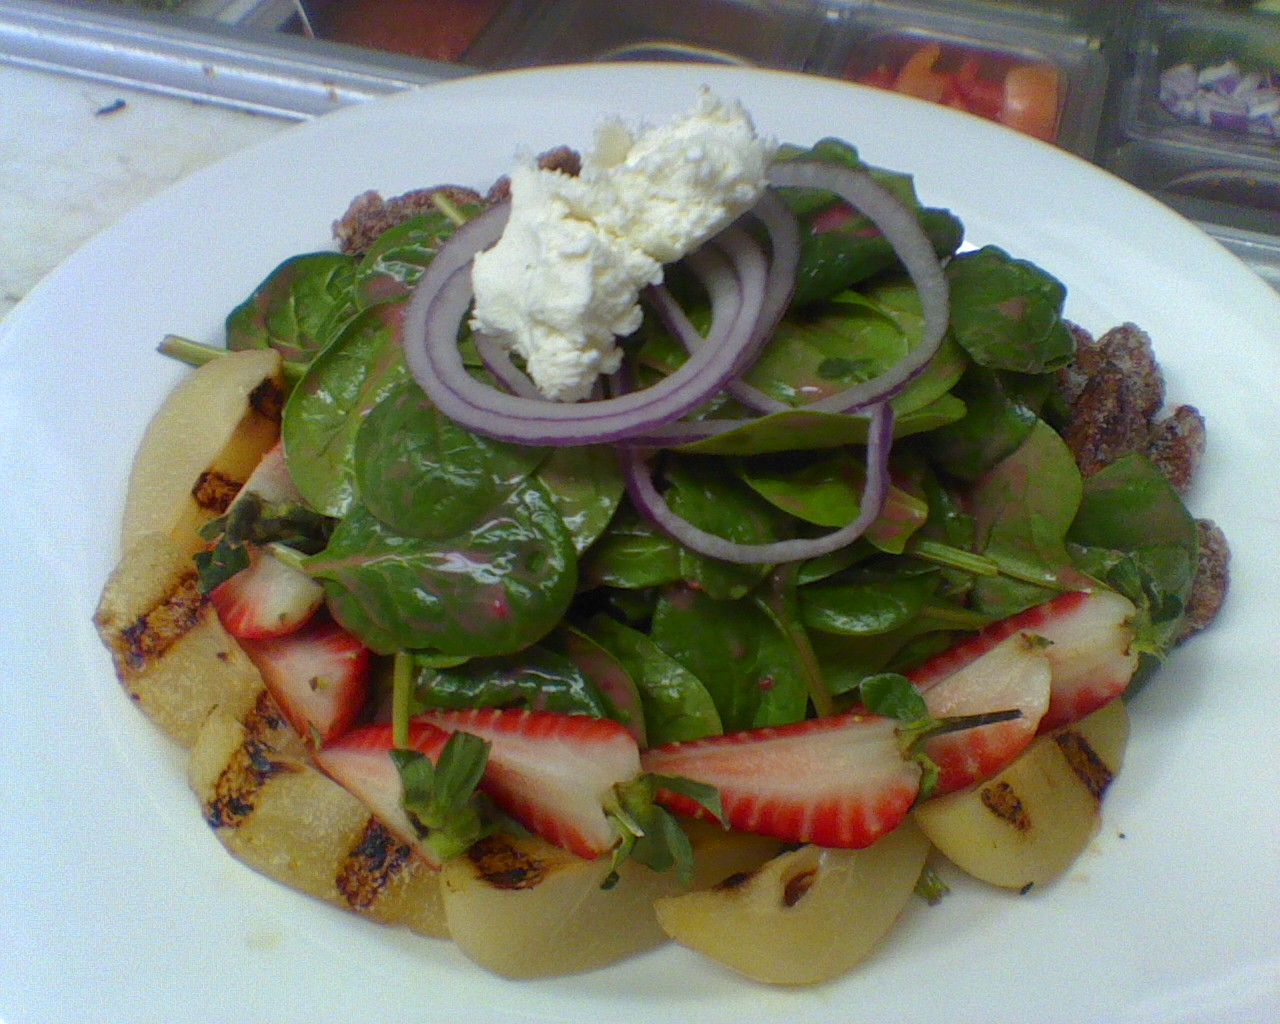 Spinach Salad With Chevre